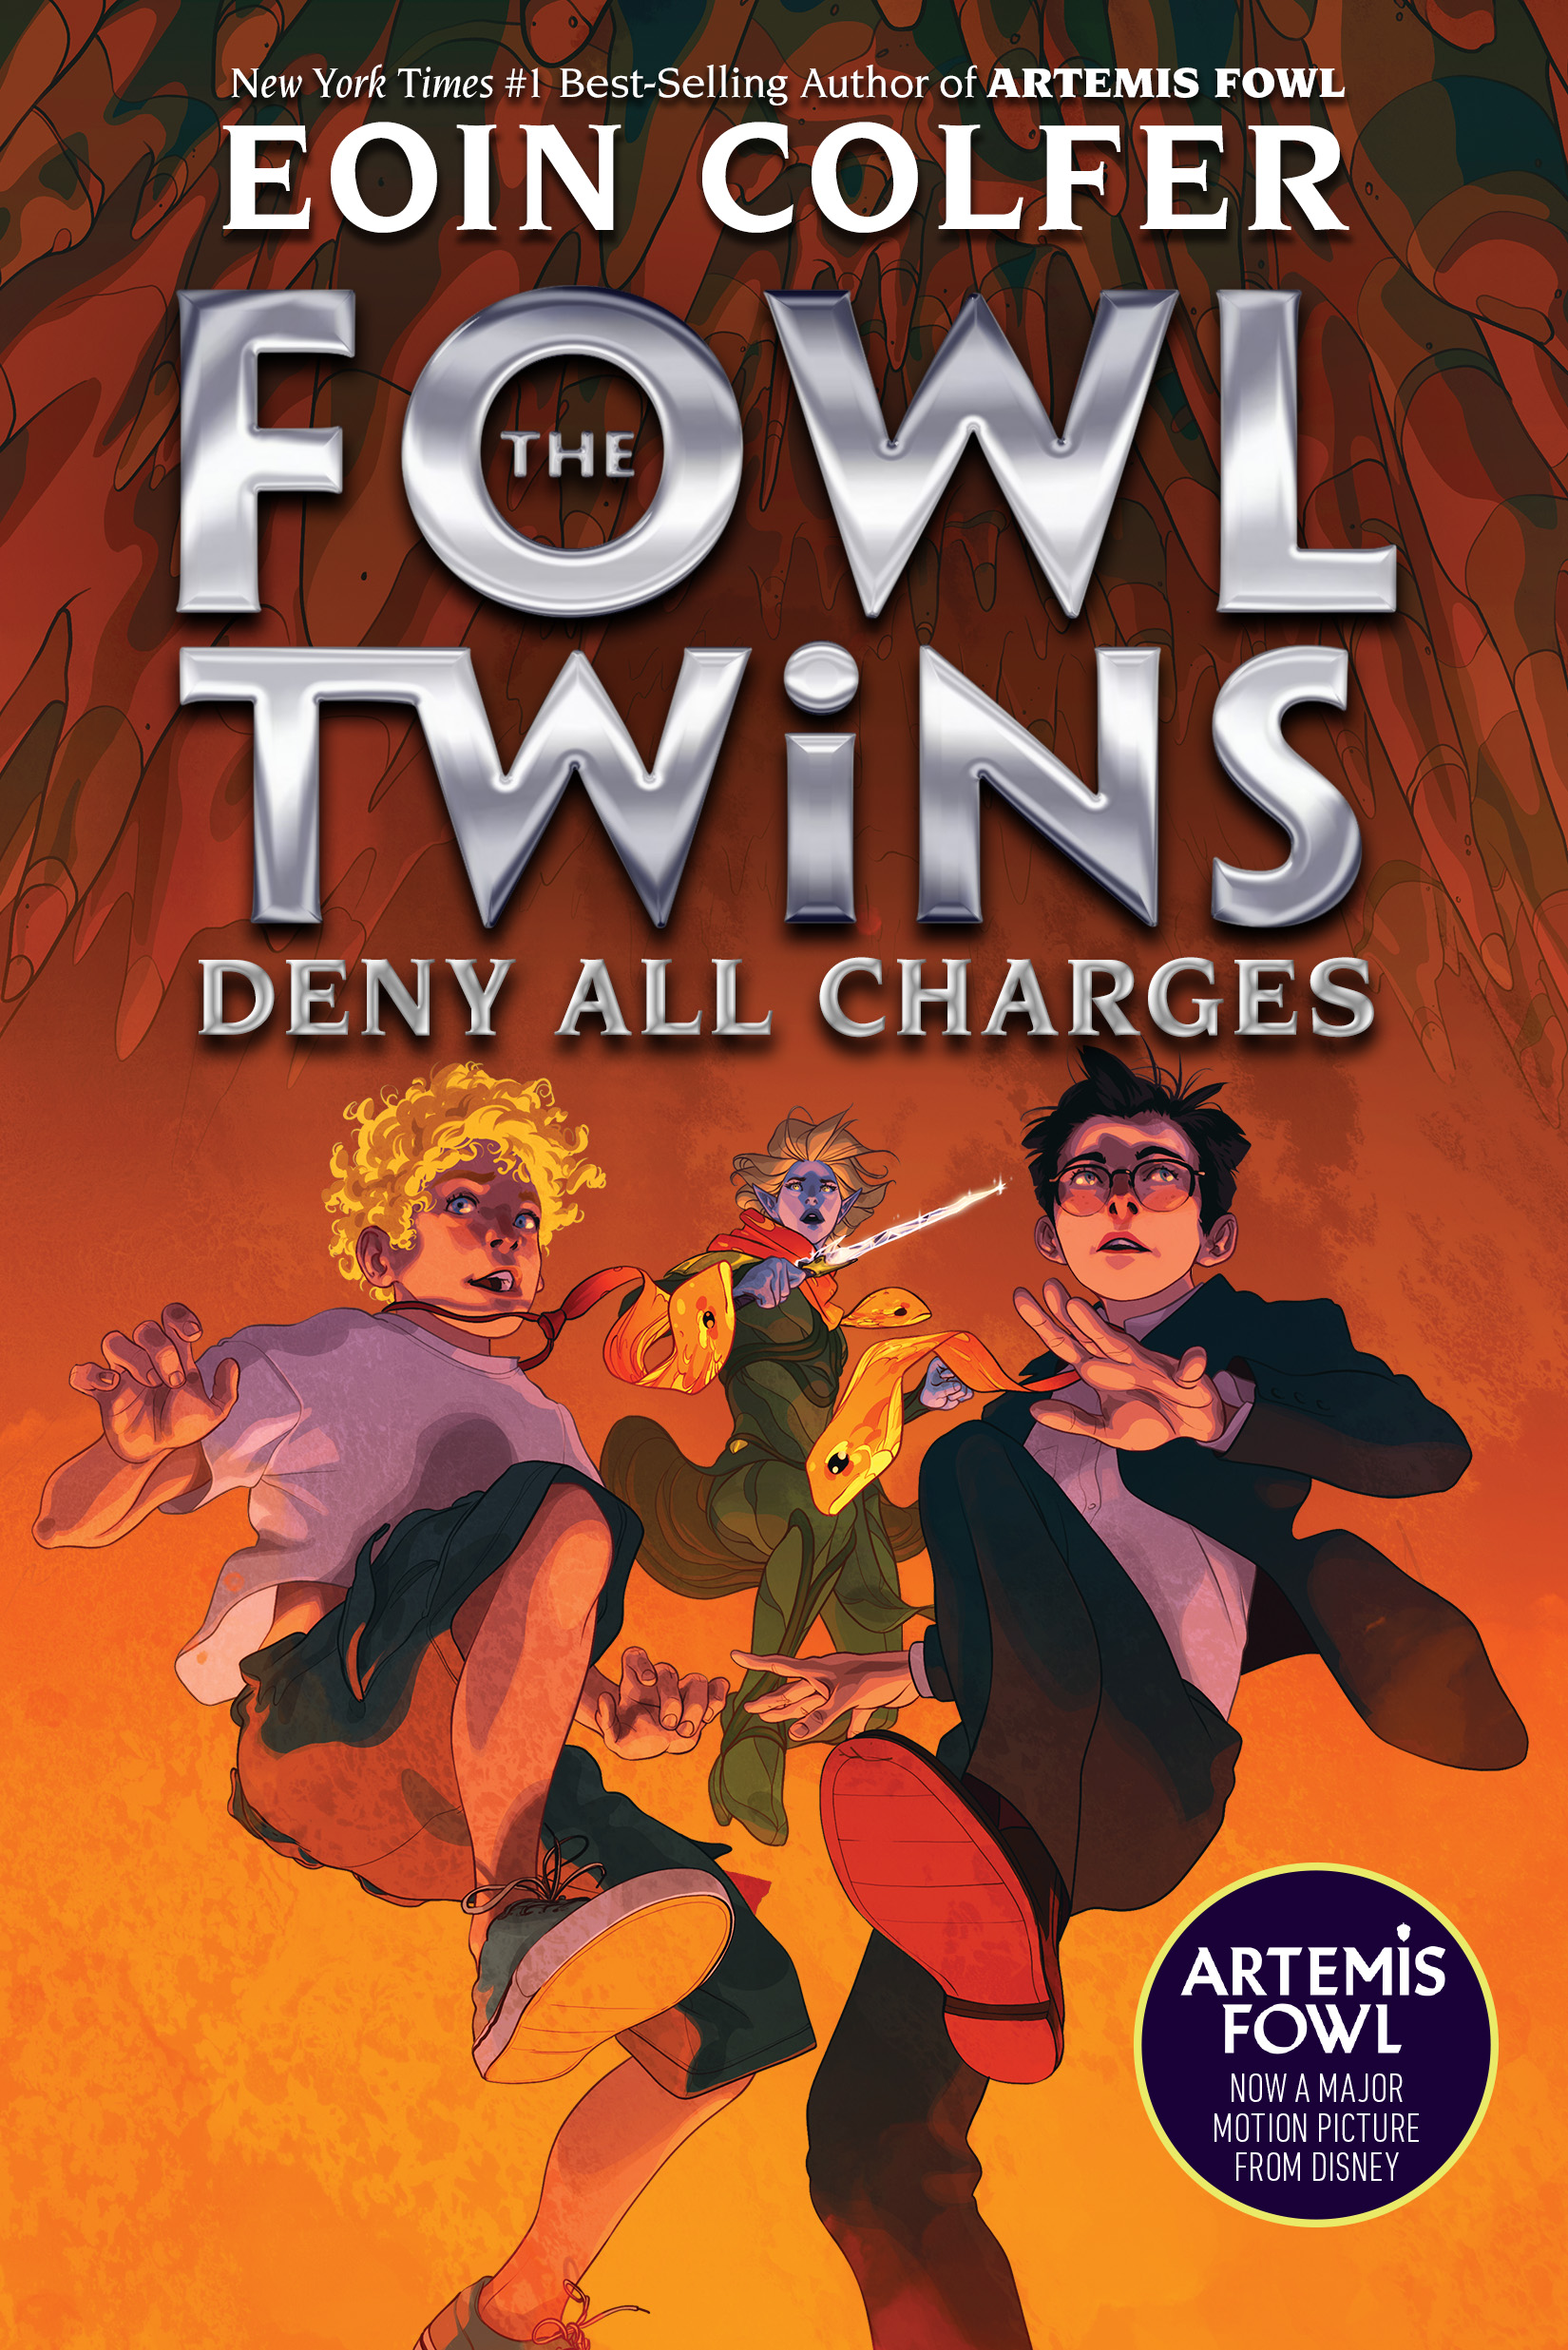 The Fowl Twins Deny All Charges | Disney Books | Disney Publishing ...